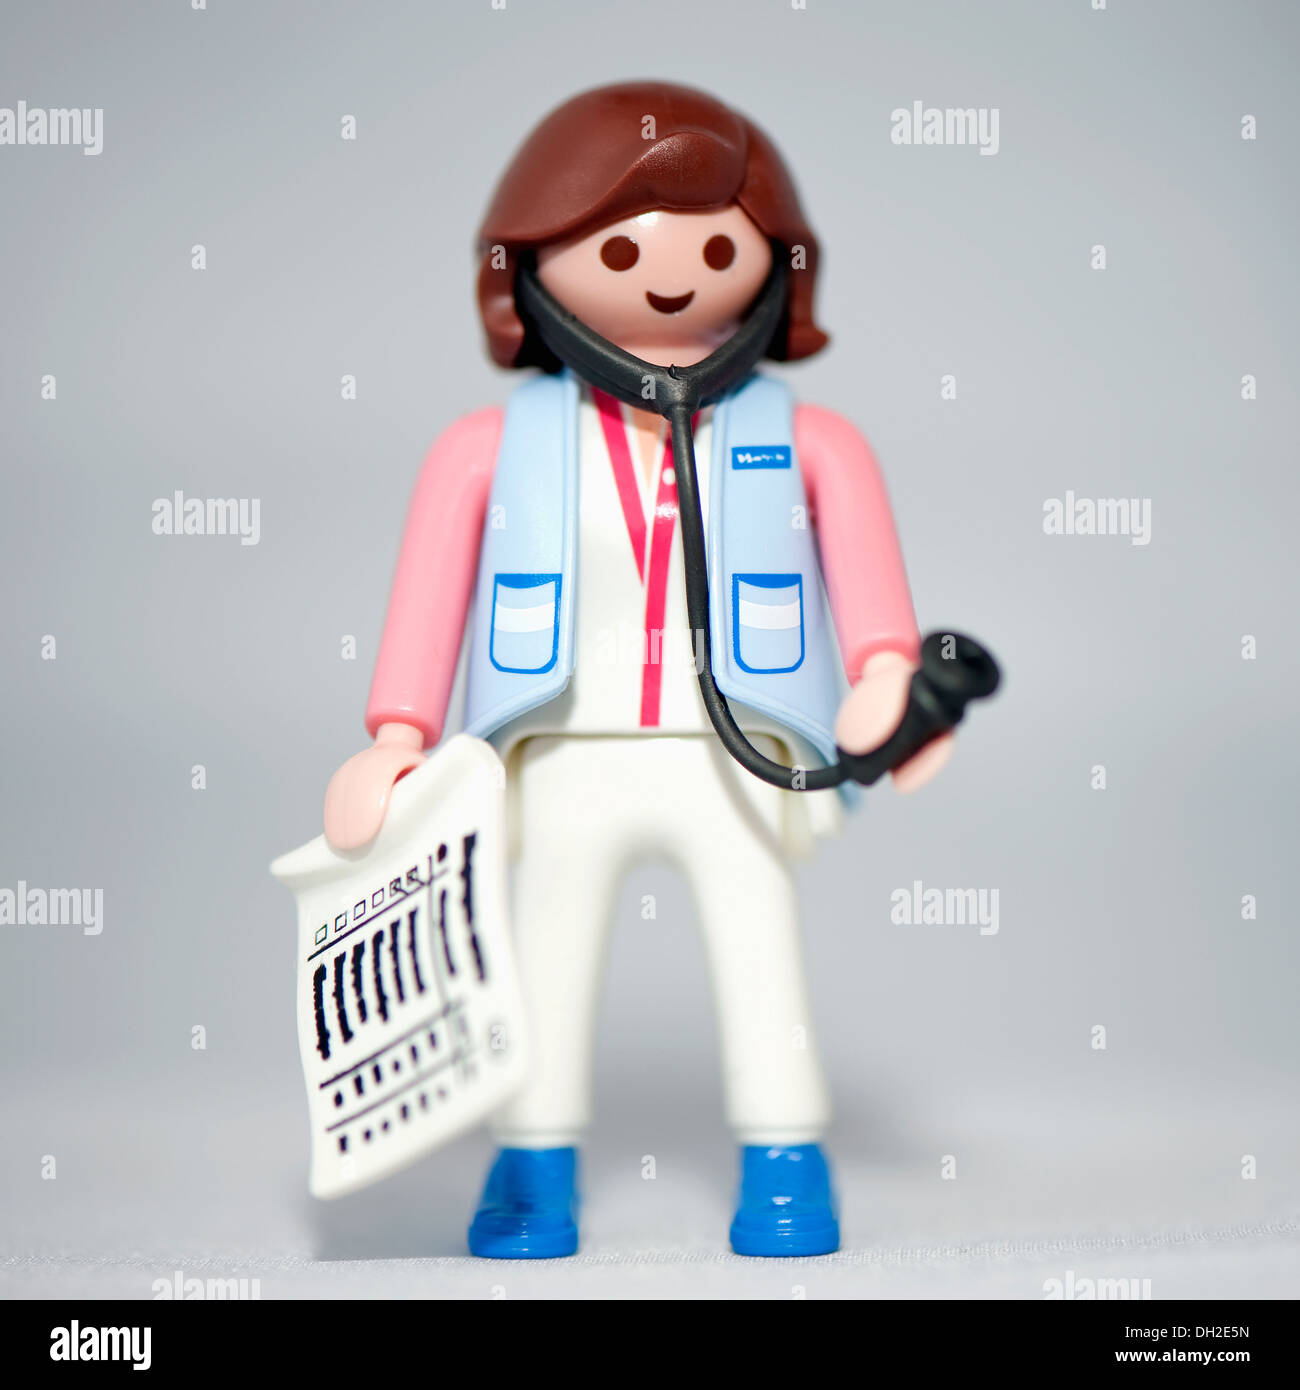 Close-up of a toy doctor figure holding a stethoscope. - Stock Image